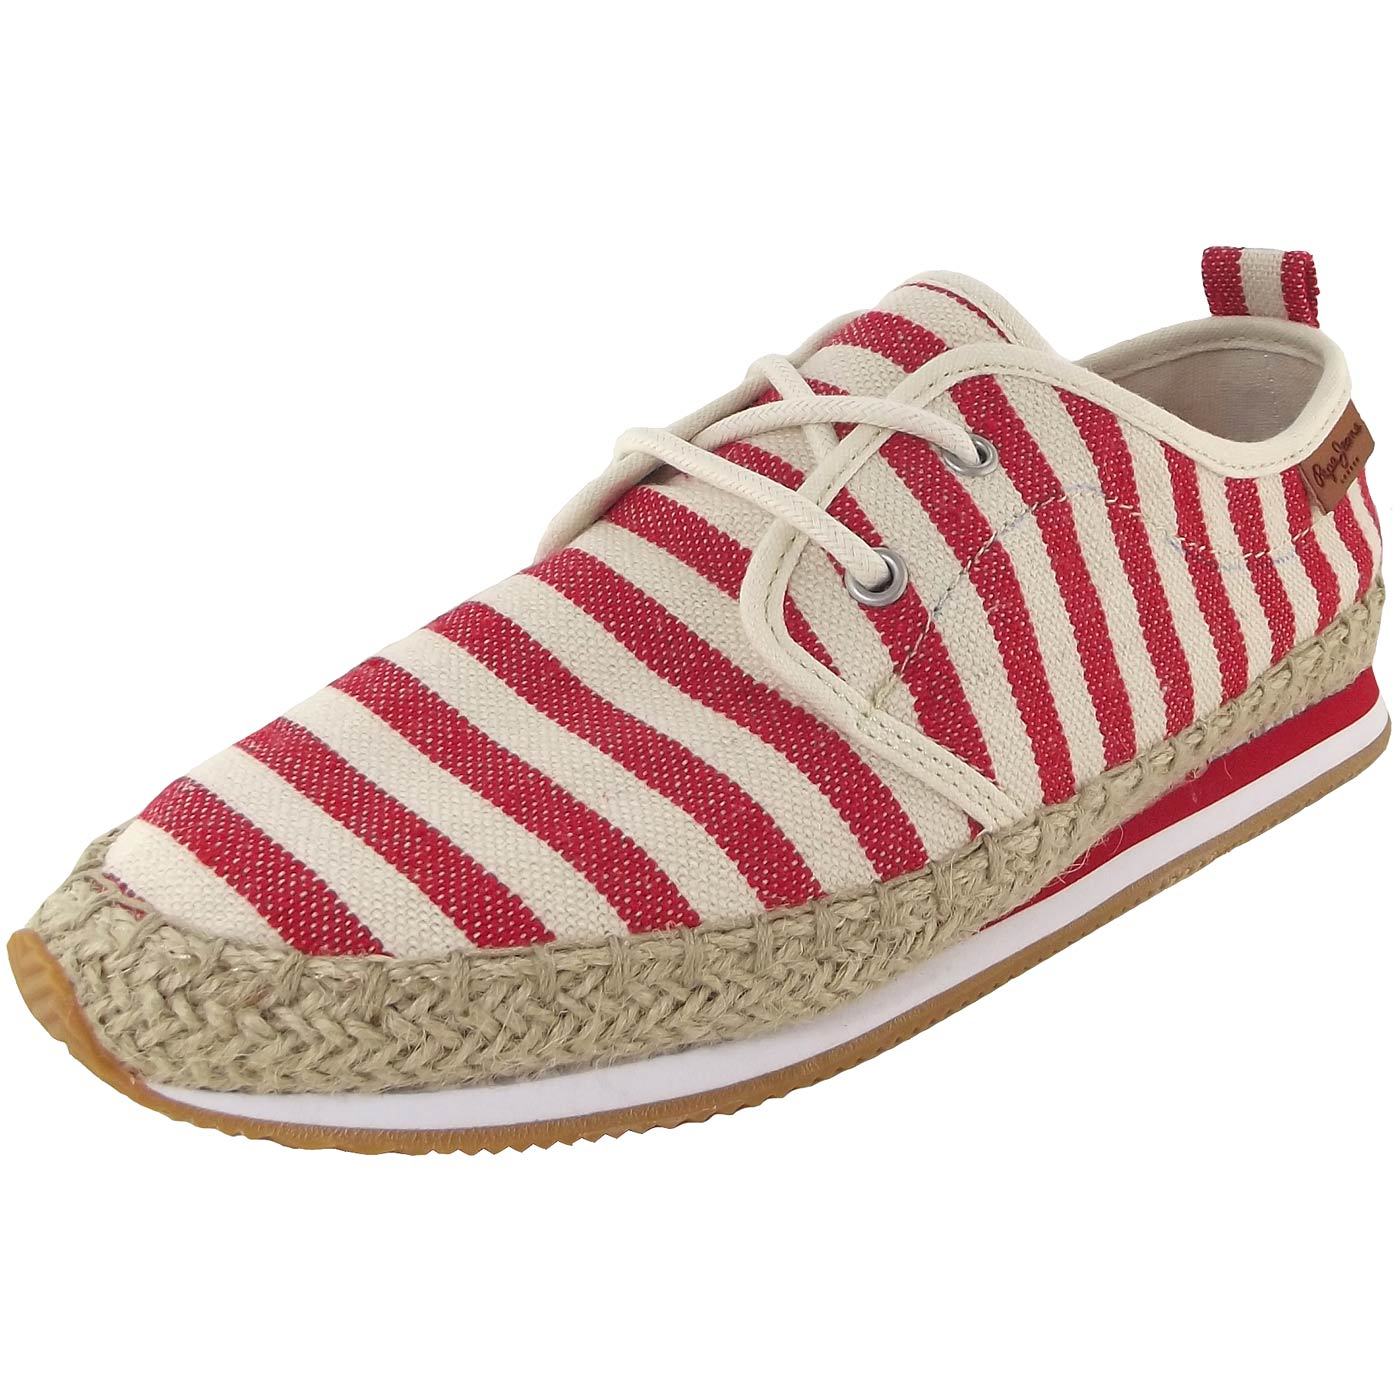 promo code 8dca6 e93b5 Pepe Jeans Babel W Stripes Women Lace-up Shoes red/beige (salsa)